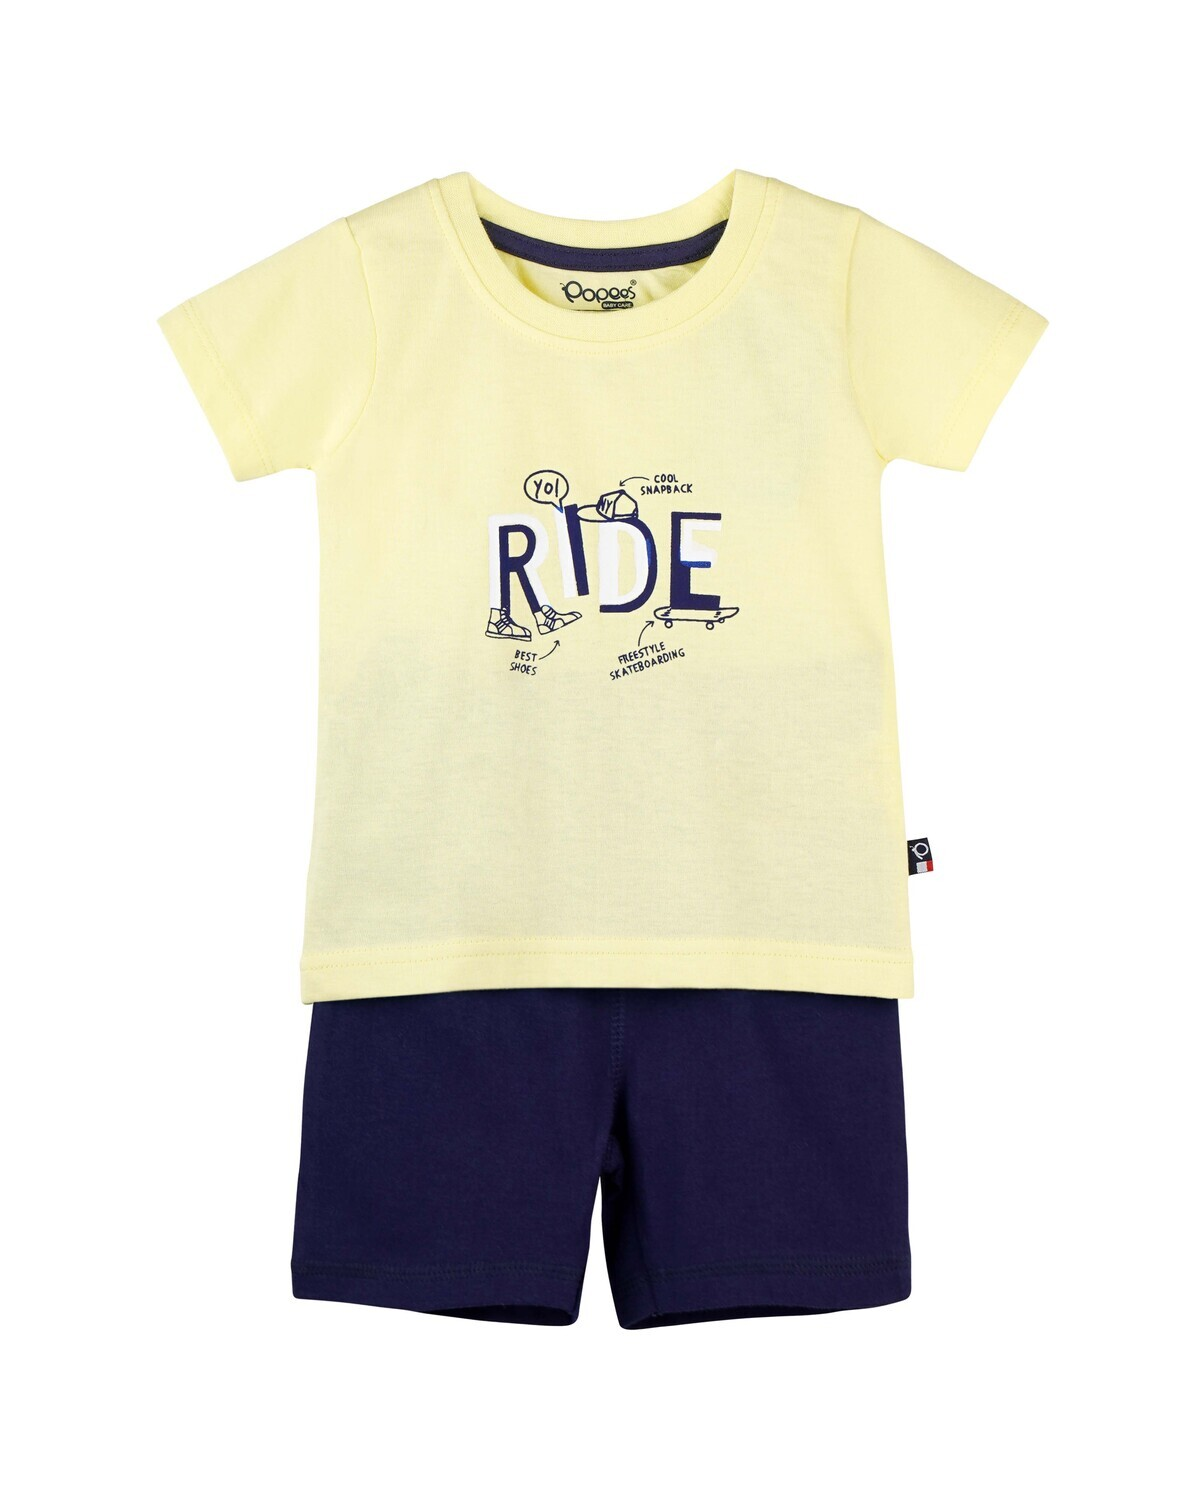 CADOC Tender Yellow Half Sleeve Top and Shorts for Baby Boys